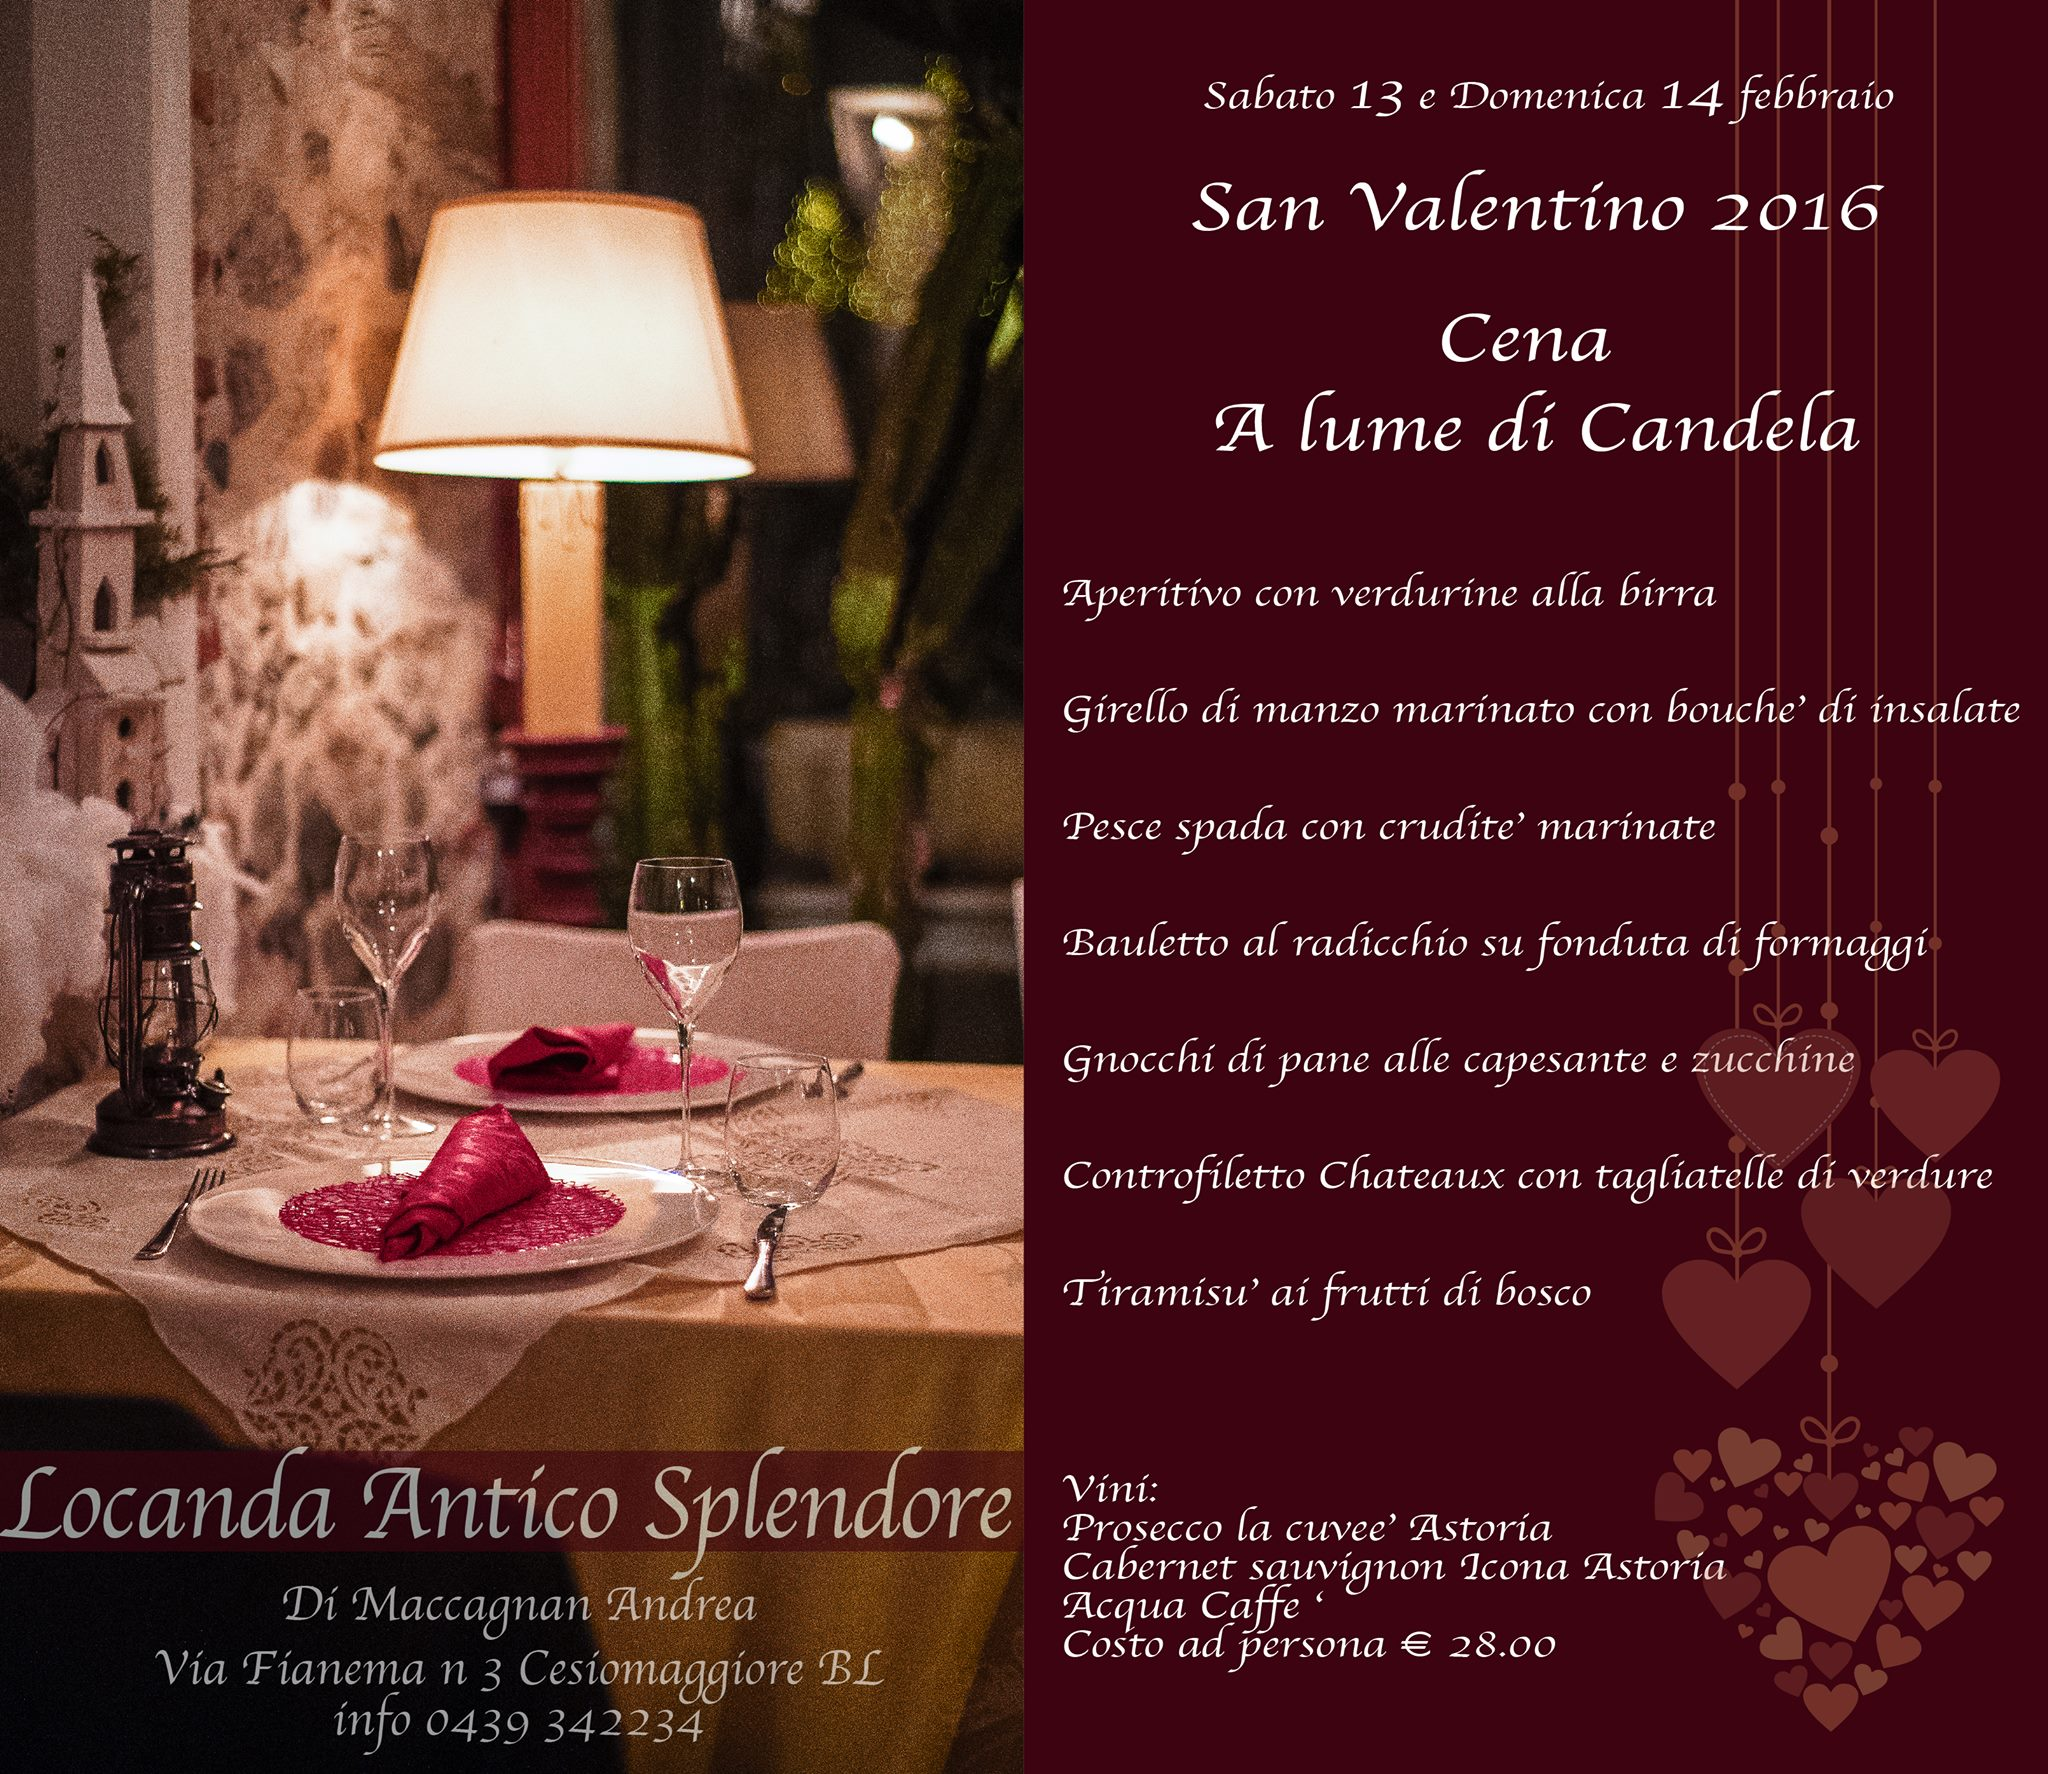 San Valentino 2016 Menu Locanda Antico Splendore